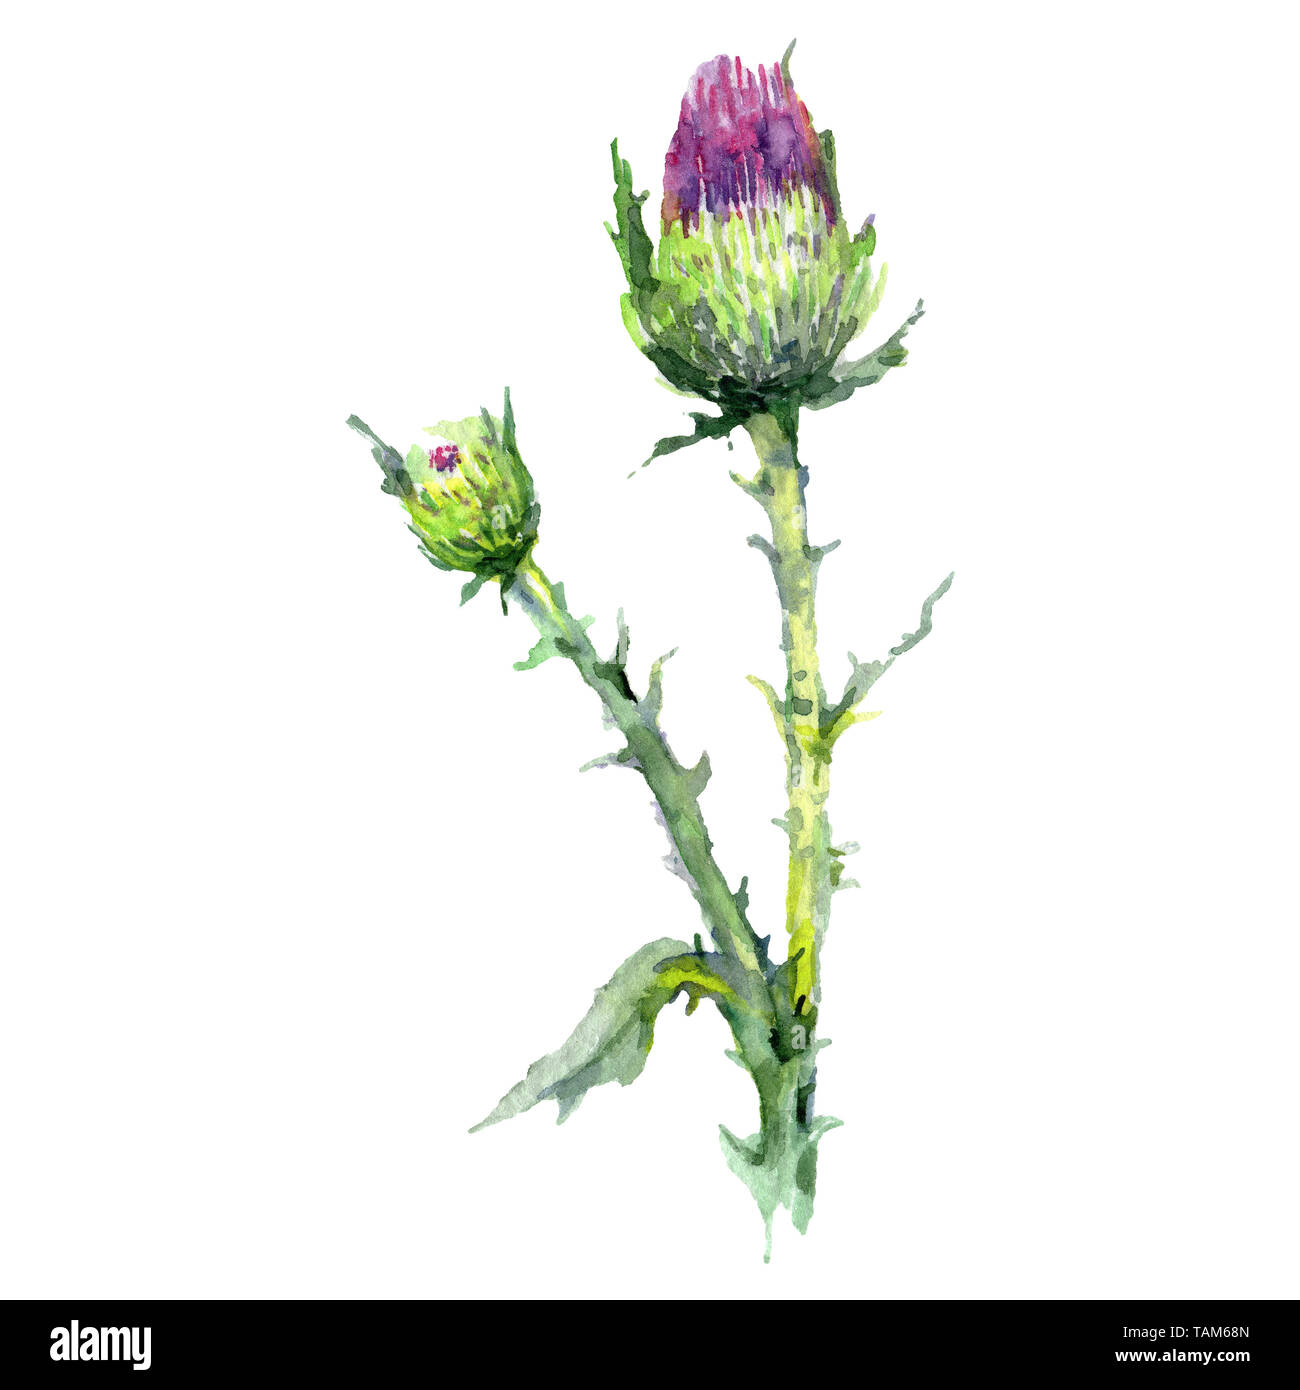 0119c9aa1 Thistle floral botanical flower. Wild spring leaf wildflower isolated.  Watercolor background illustration set. Watercolour drawing fashion  aquarelle i